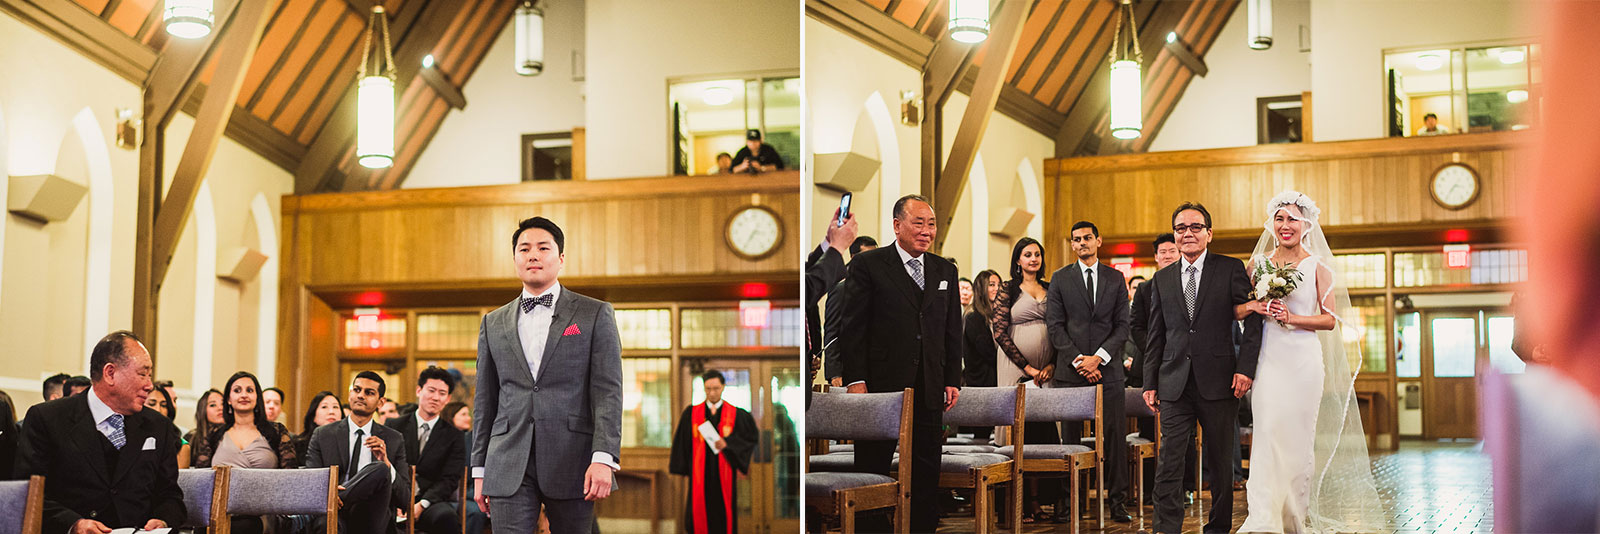 27 wedding photography at church - Rebecca + Doha // Wedding Photos at Room 1520 Chicago